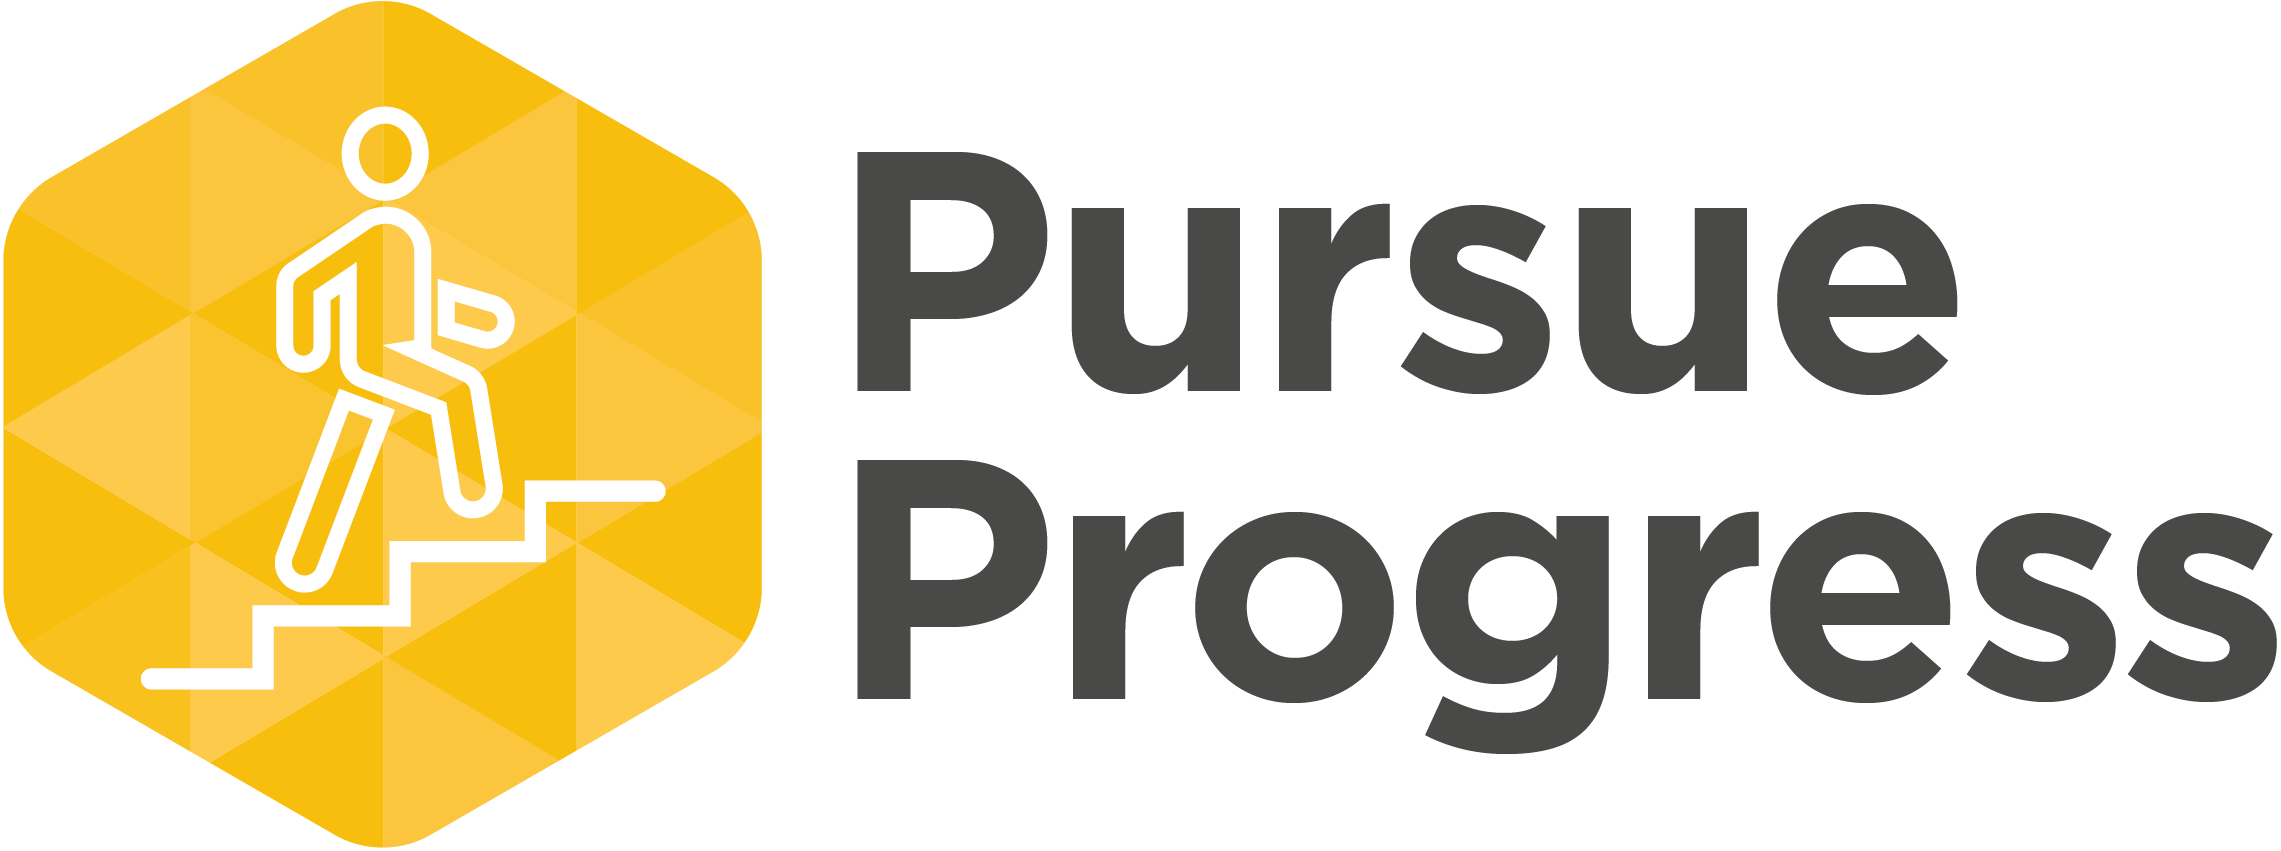 Pursue_Progress-01.png